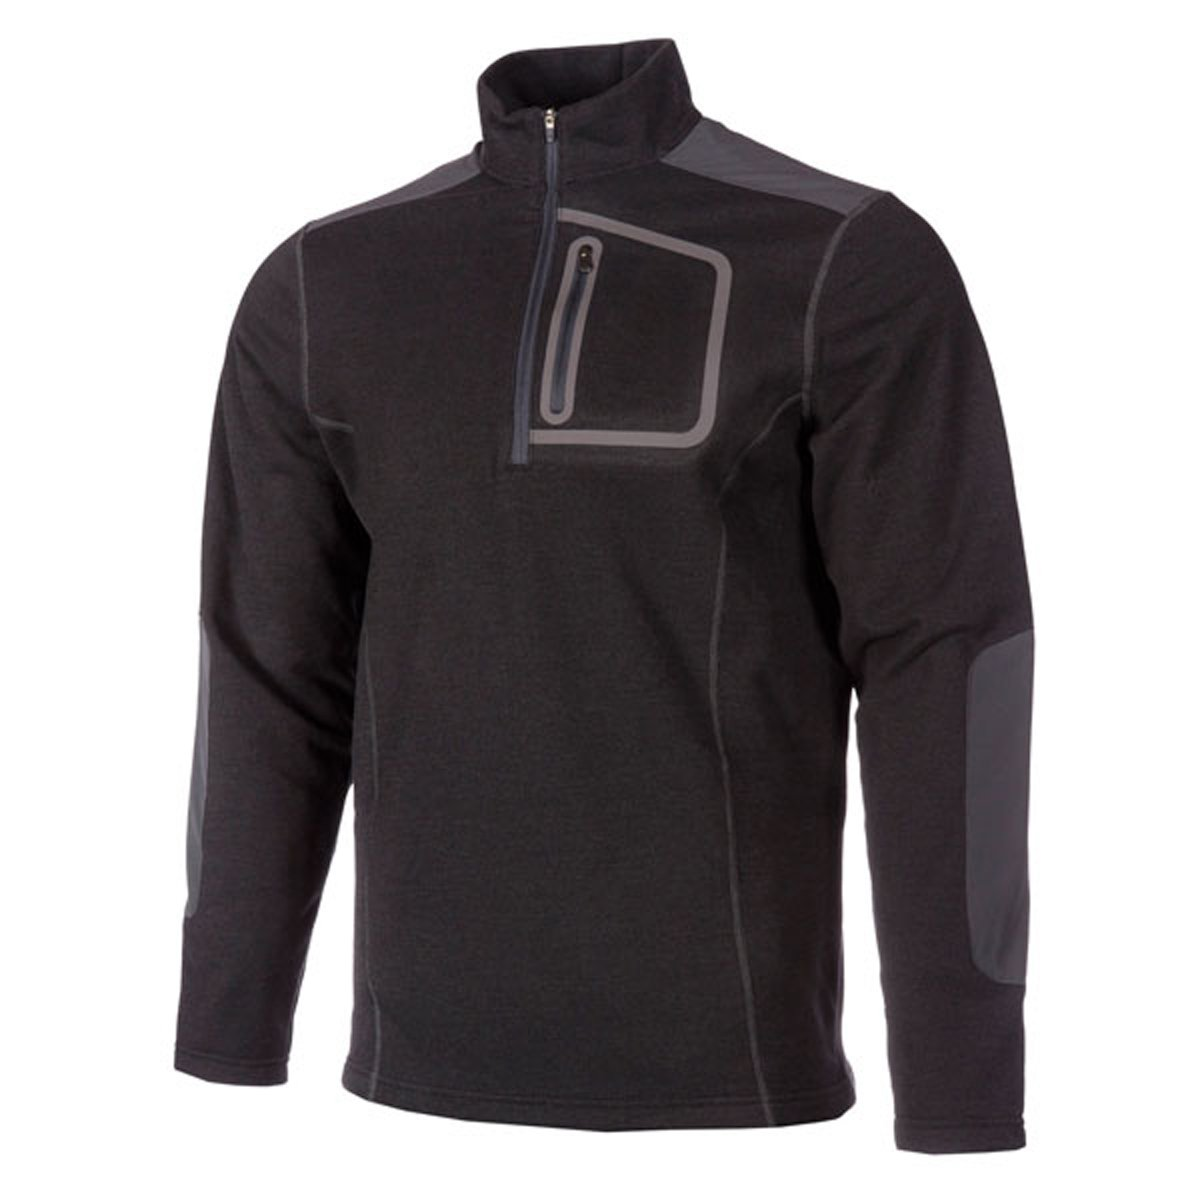 Klim Yukon Pullover Long-Sleeve Shirt Men's Undergarment MX Motorcycle Body Armor - Black / 3X-Large